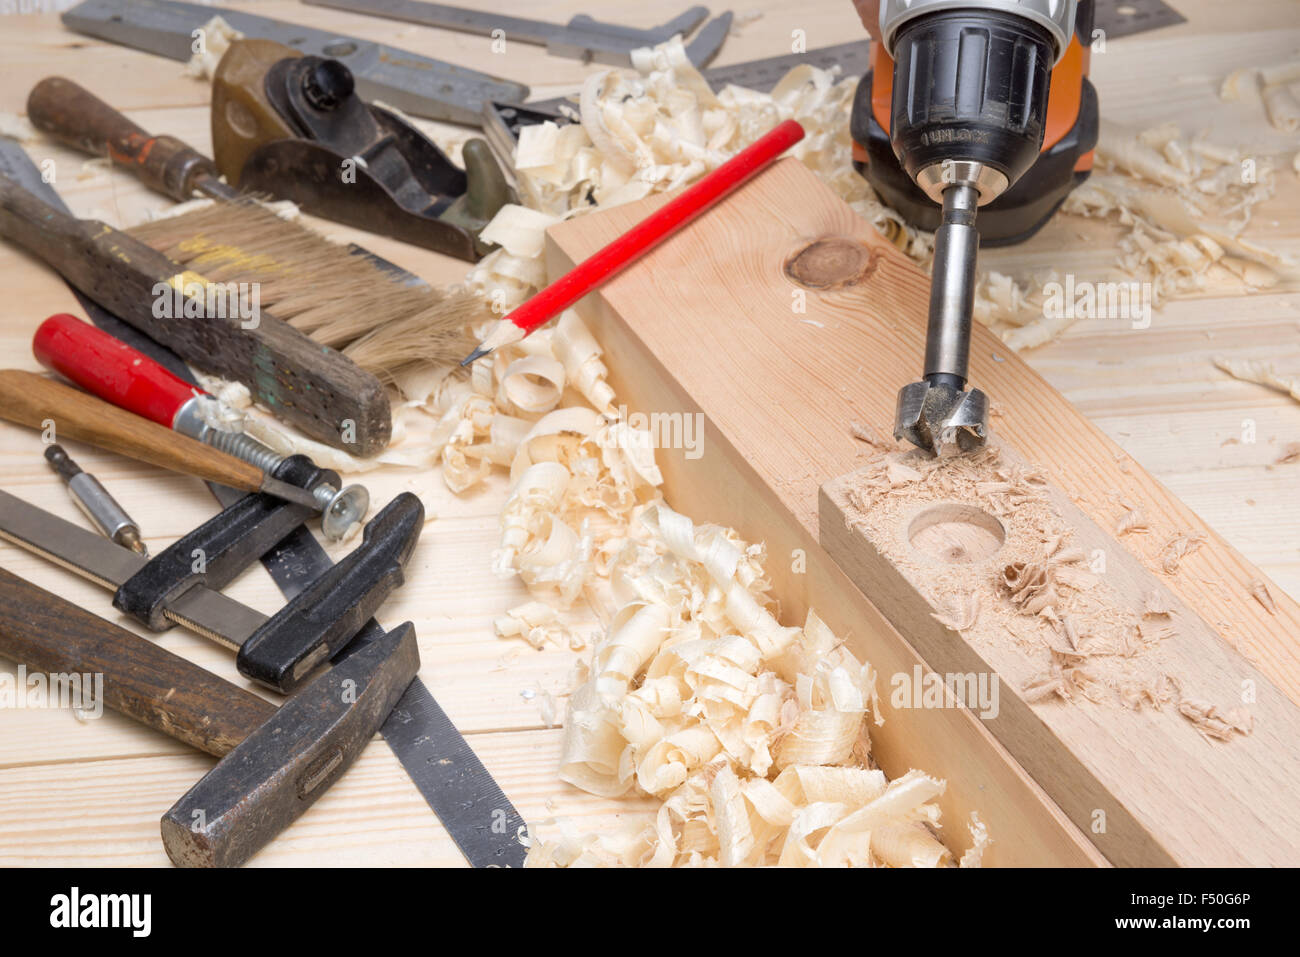 Carpentry Tools And Wood Shavings In The Furniture Workshop Stock